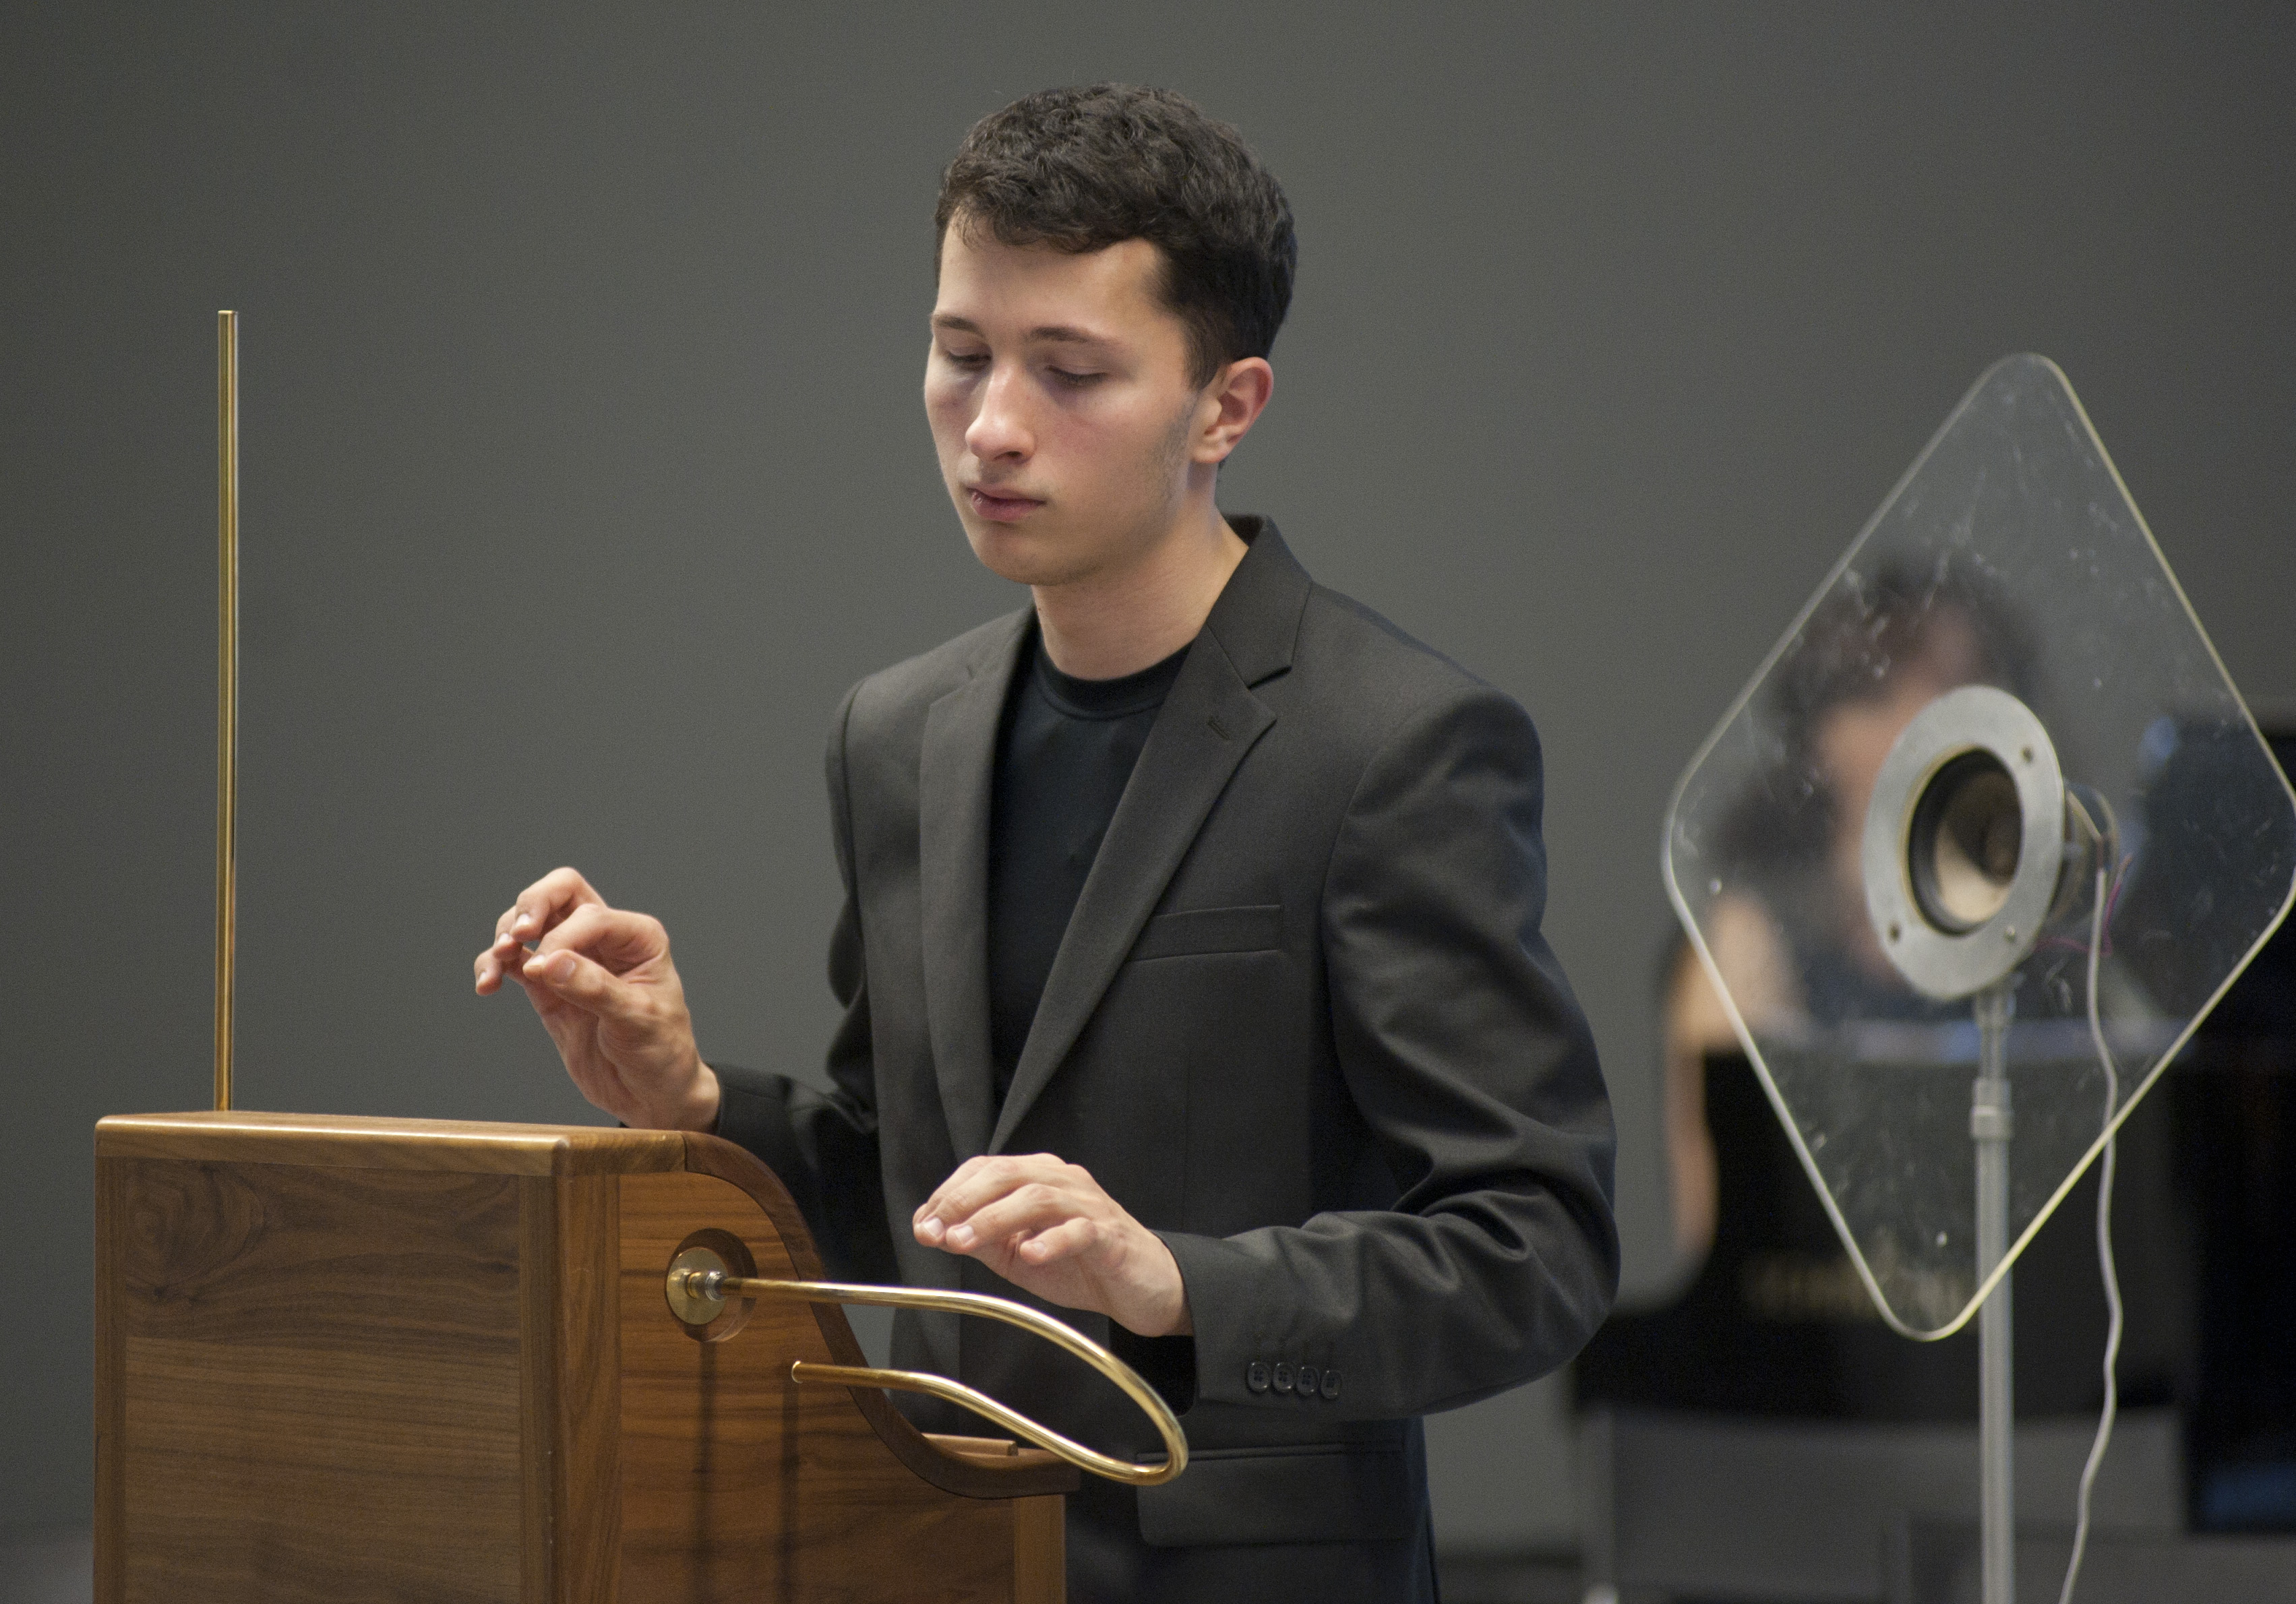 Peter Theremin plays theremin at Russian-Japanese concert in MultimediaArtMuseum in Moscow, 24 September 2015. Source: Press Photo